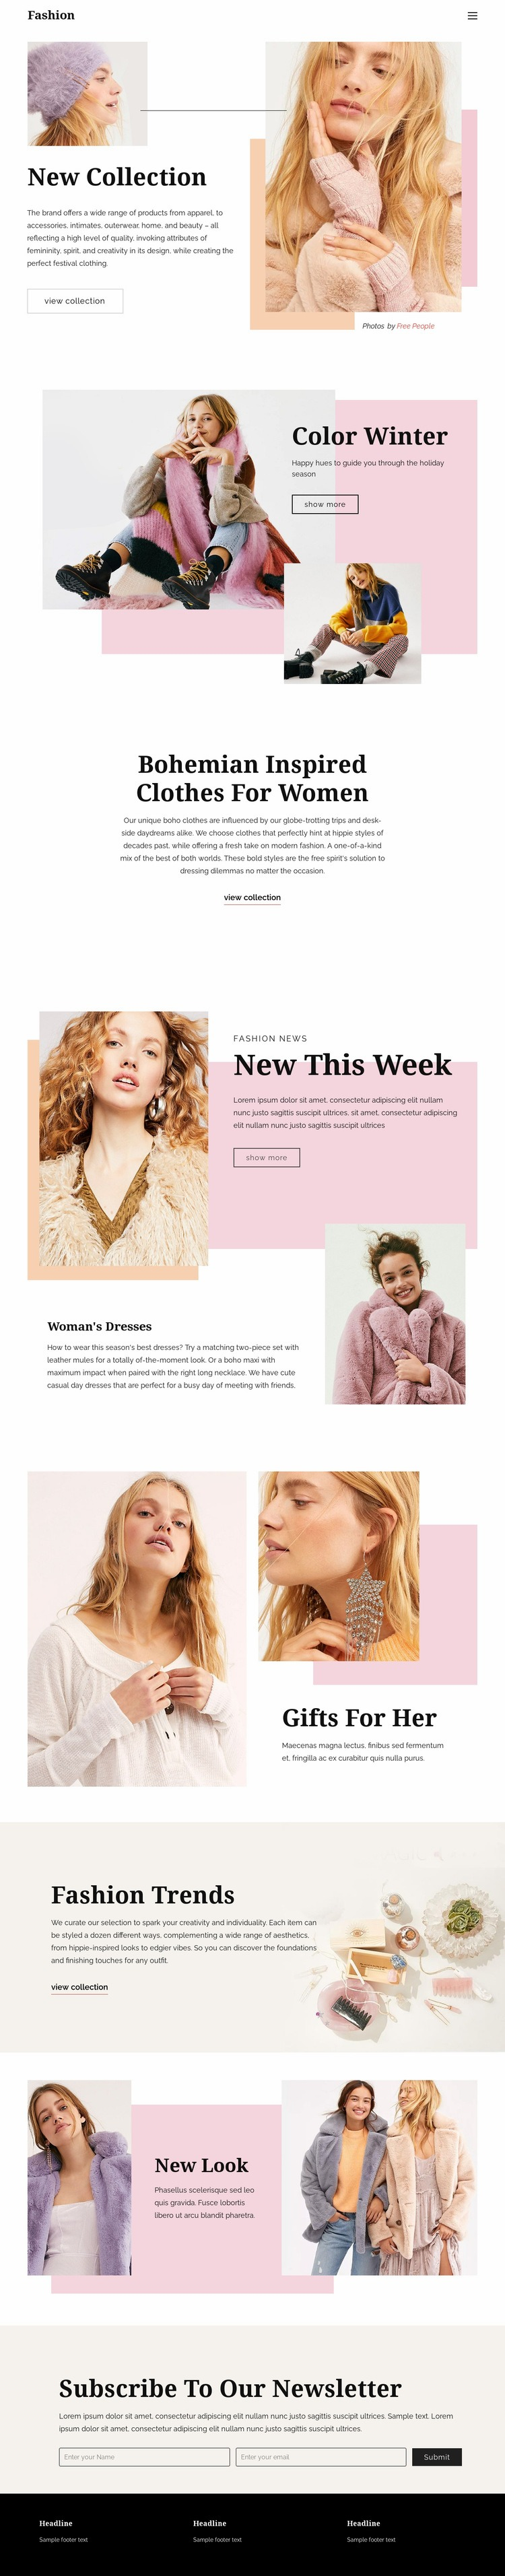 Fashion Page Design Html Code Example